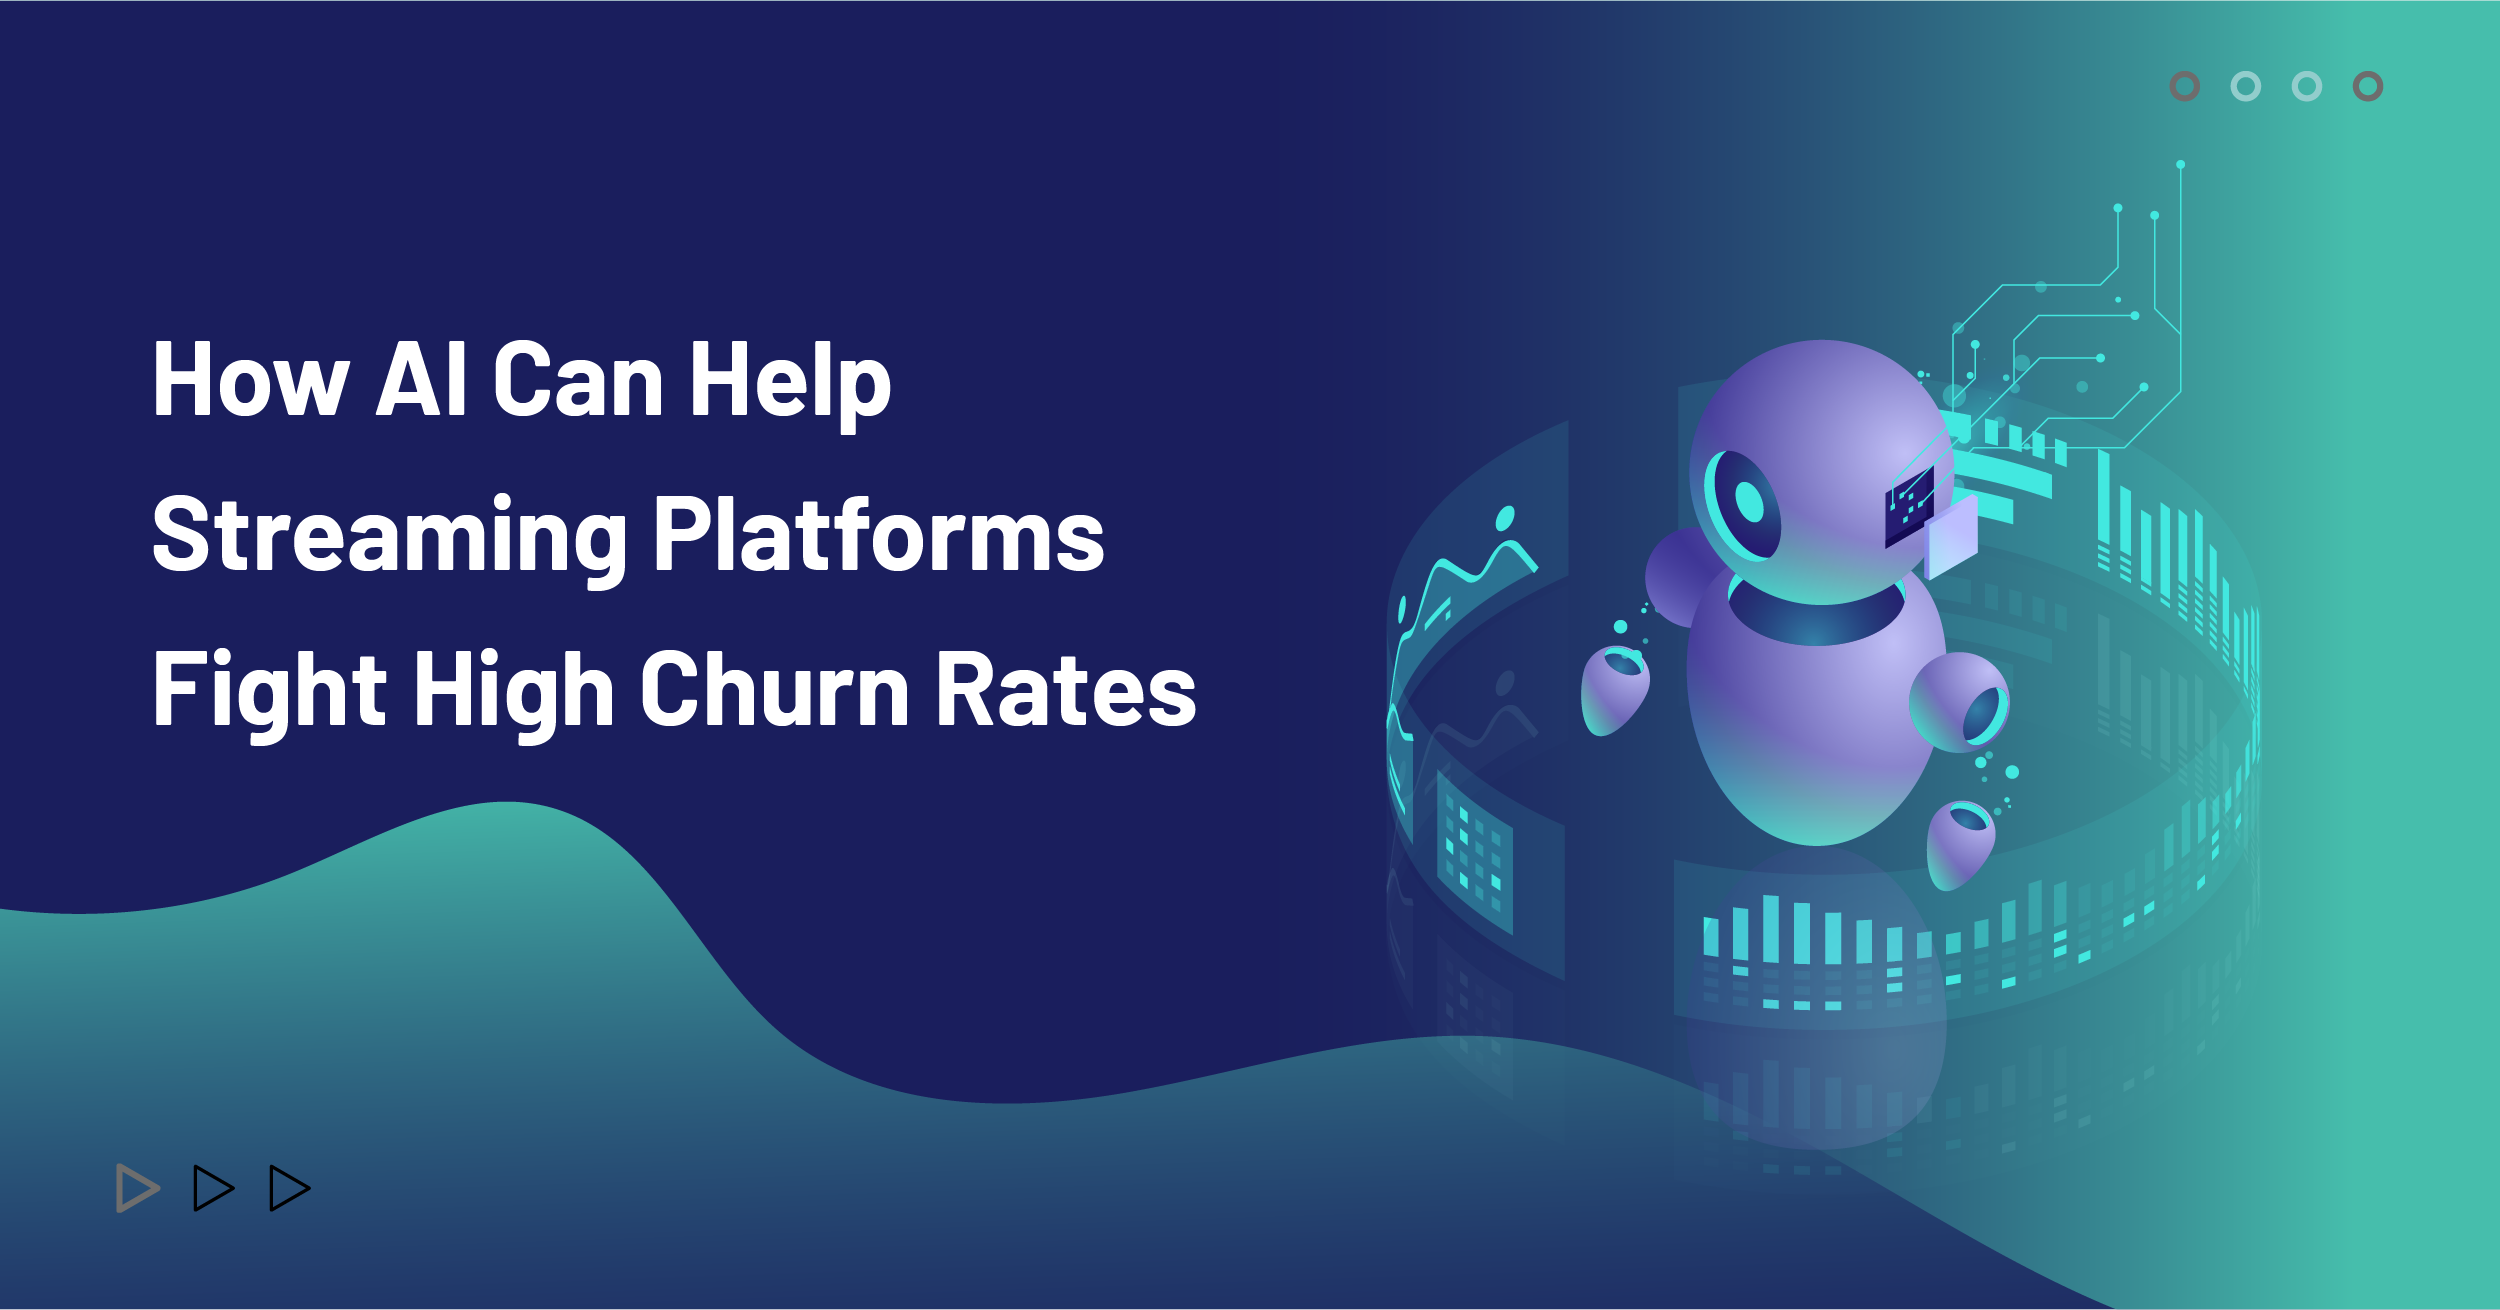 How AI Can Help Streaming Platforms Fight High Churn Rates